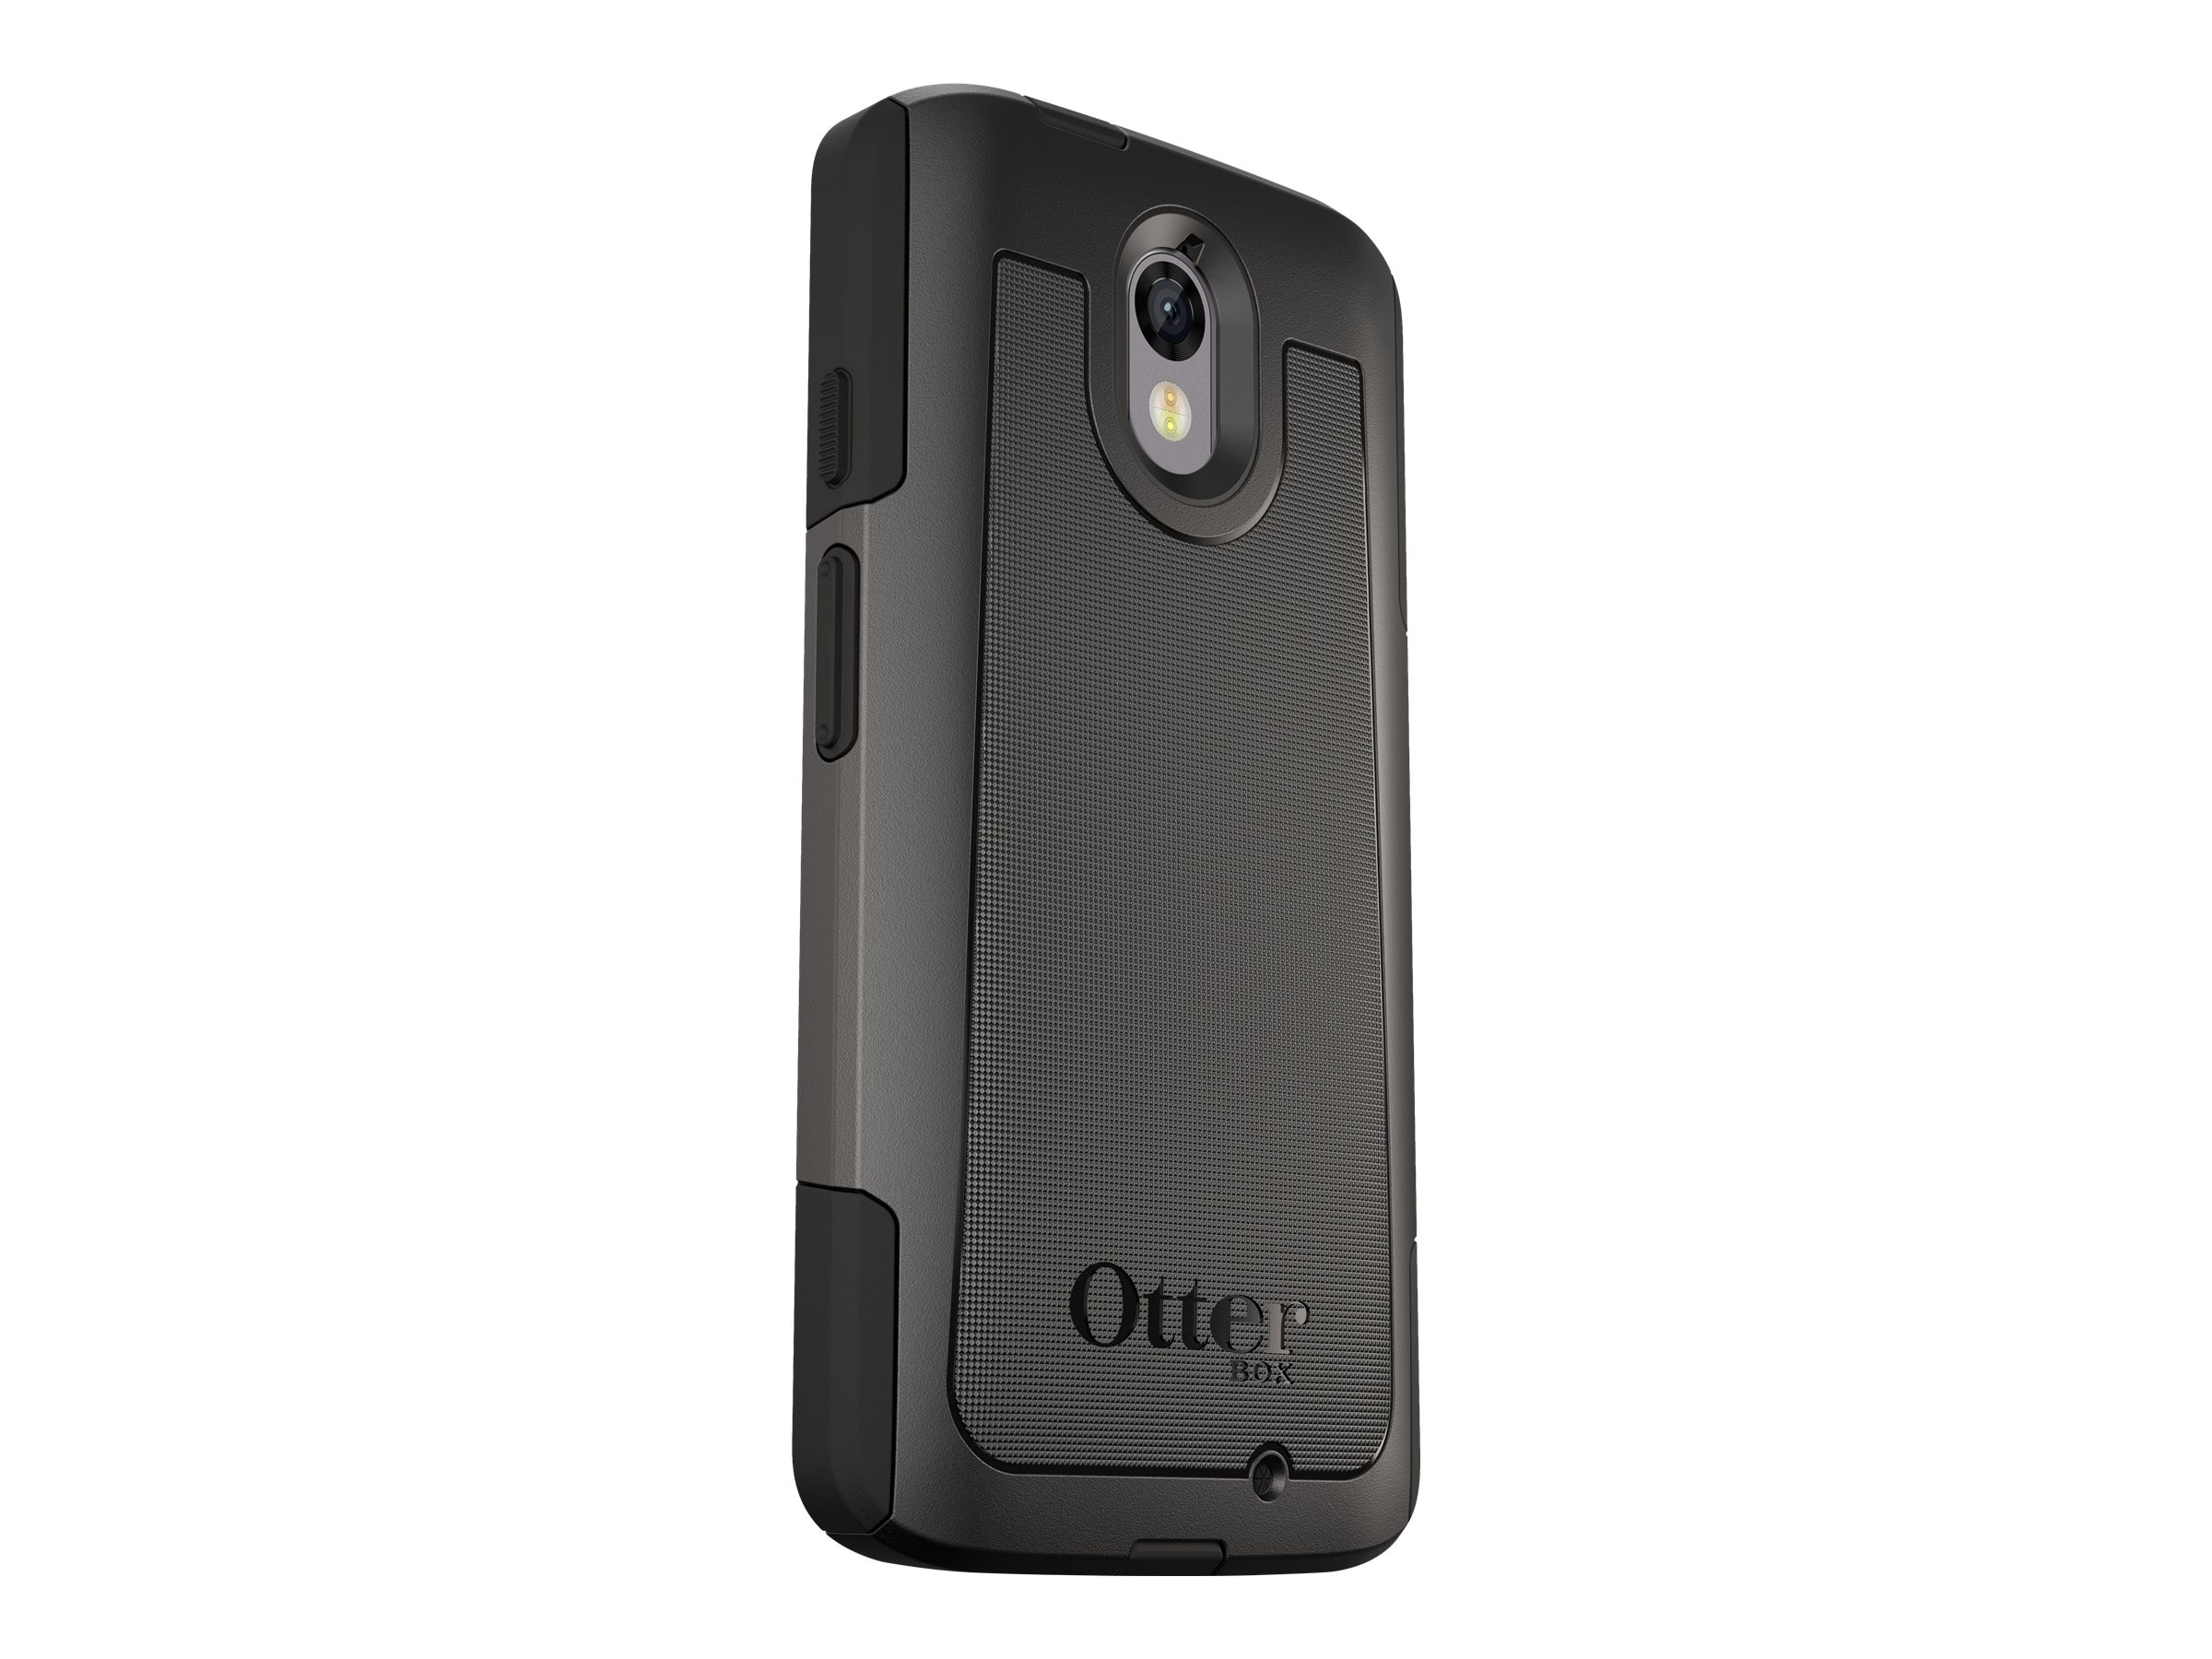 OtterBox Commuter Series Case for Motorola Droid Turbo 2, Black, 77-51927